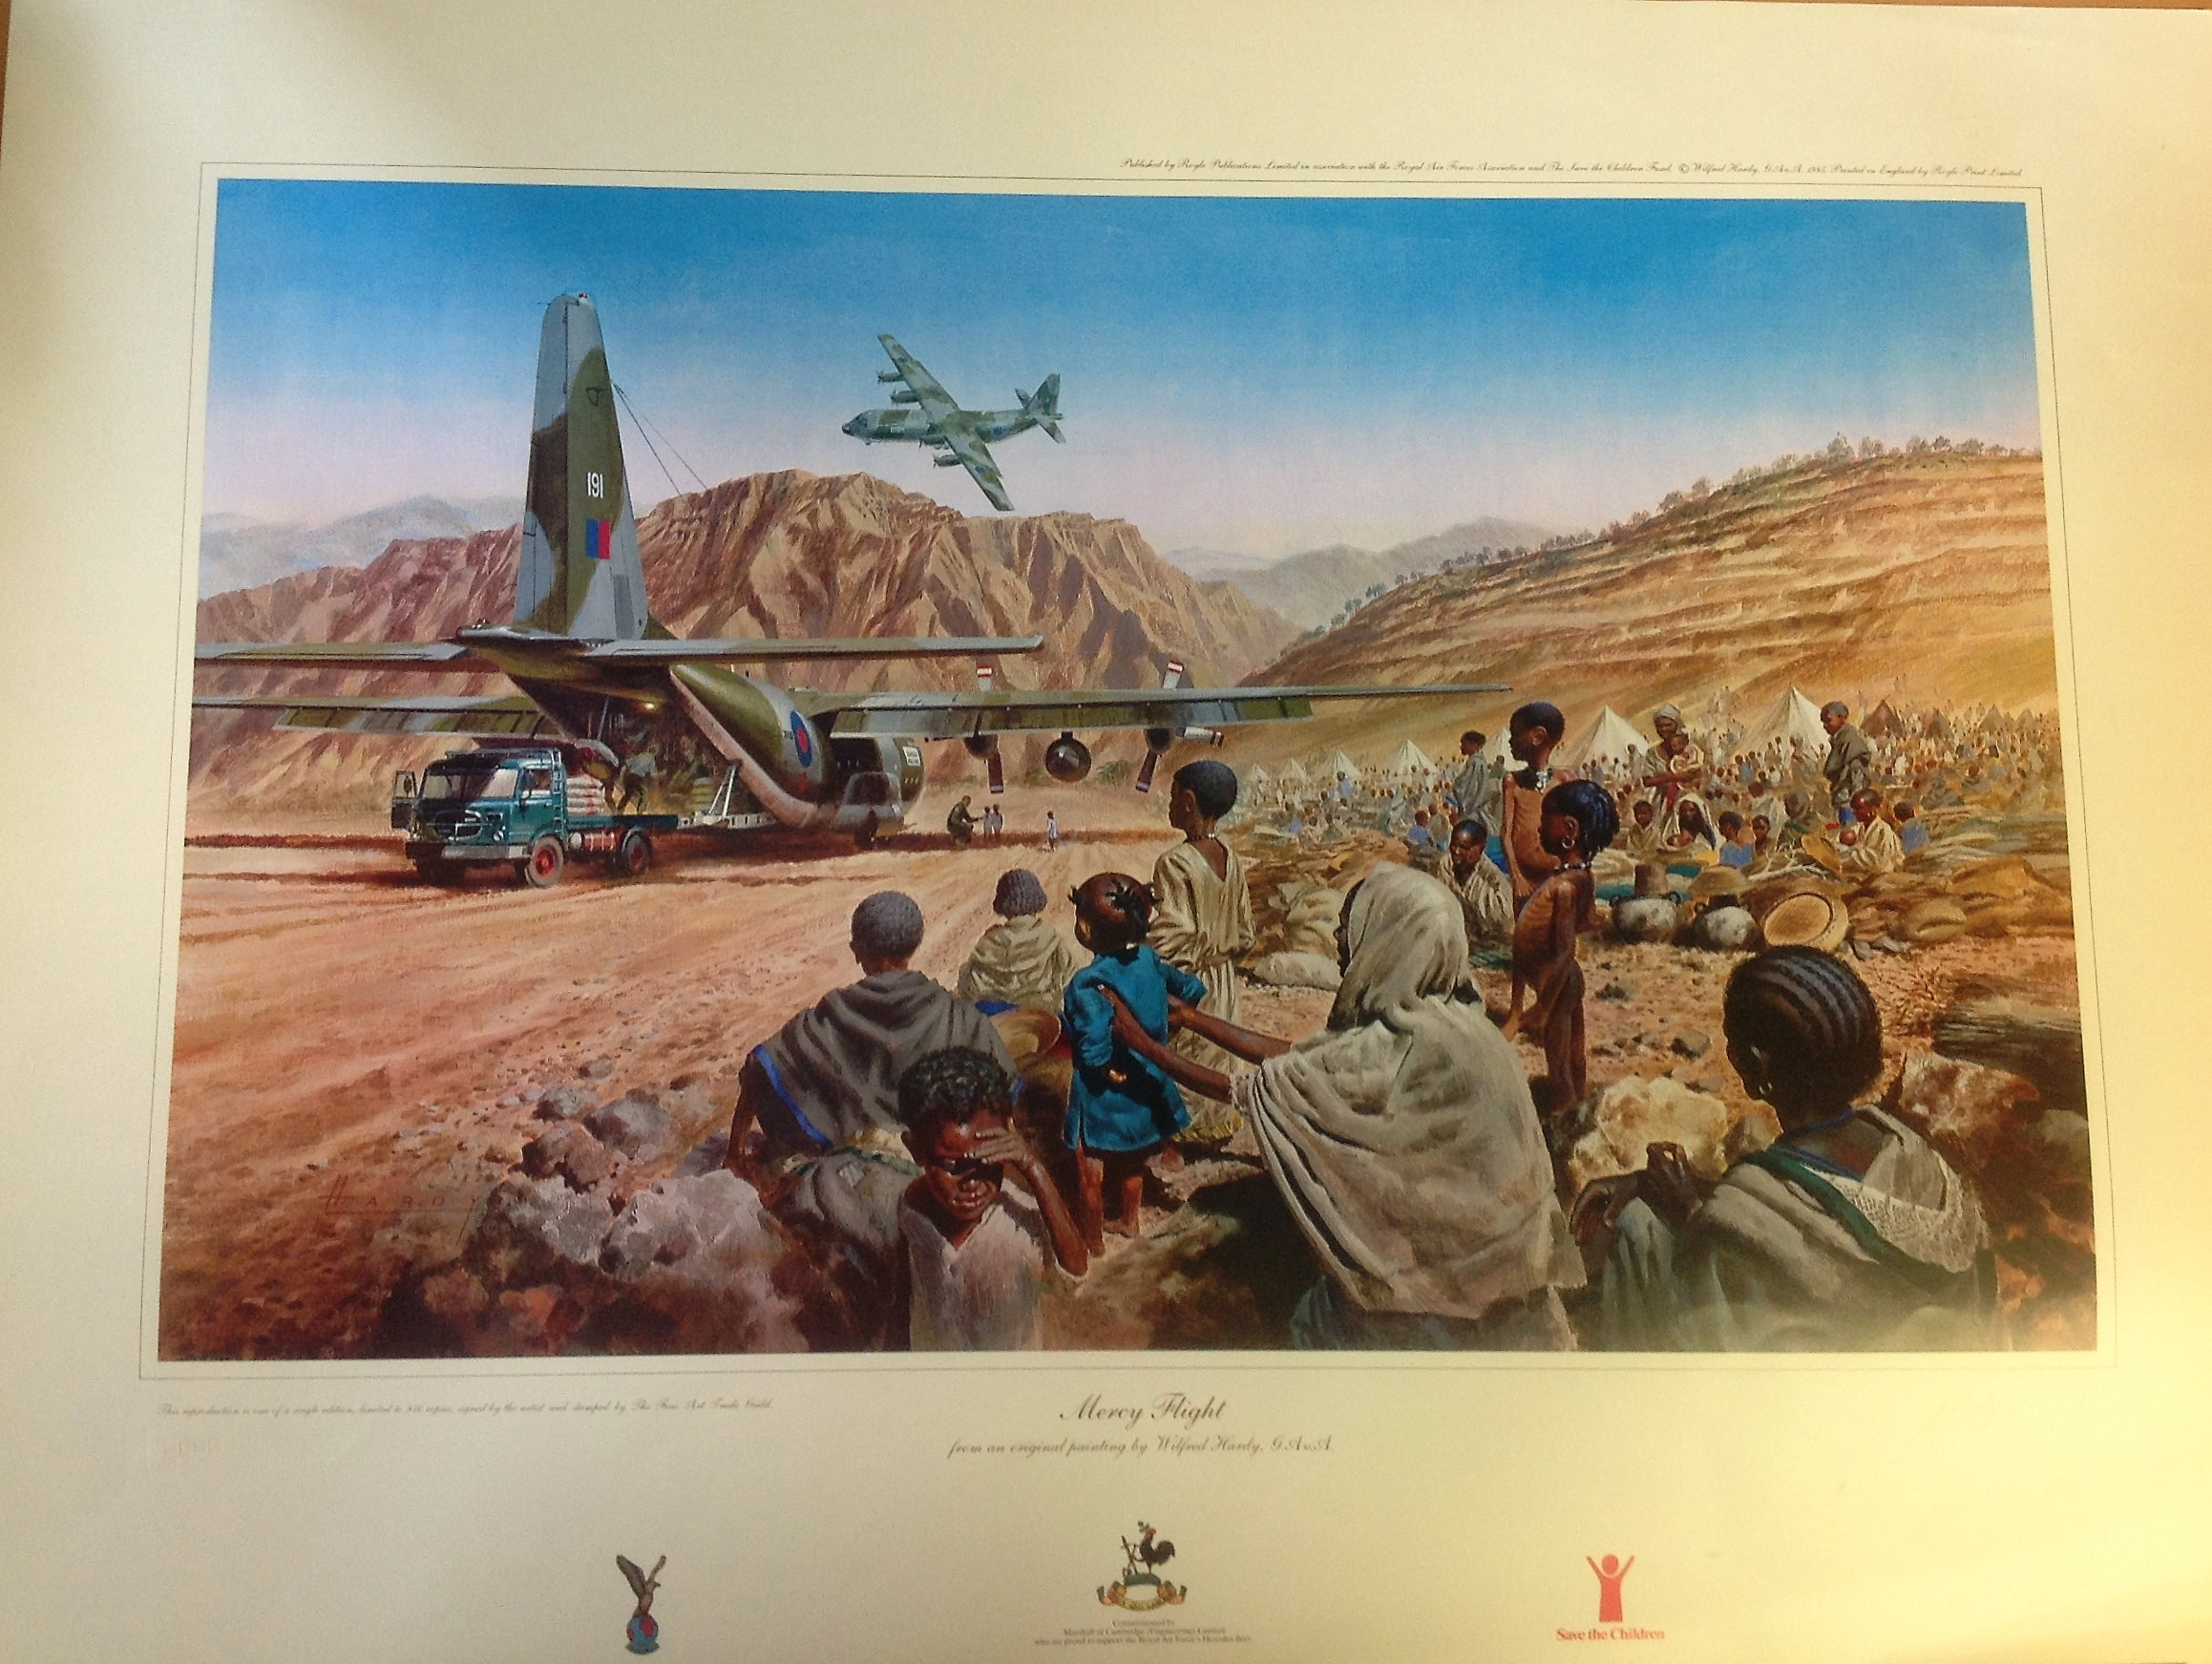 Lot 58 - Military Print approx. 32x24 RAF print titled Mercy Flight by the artist Wilfred Hardy this